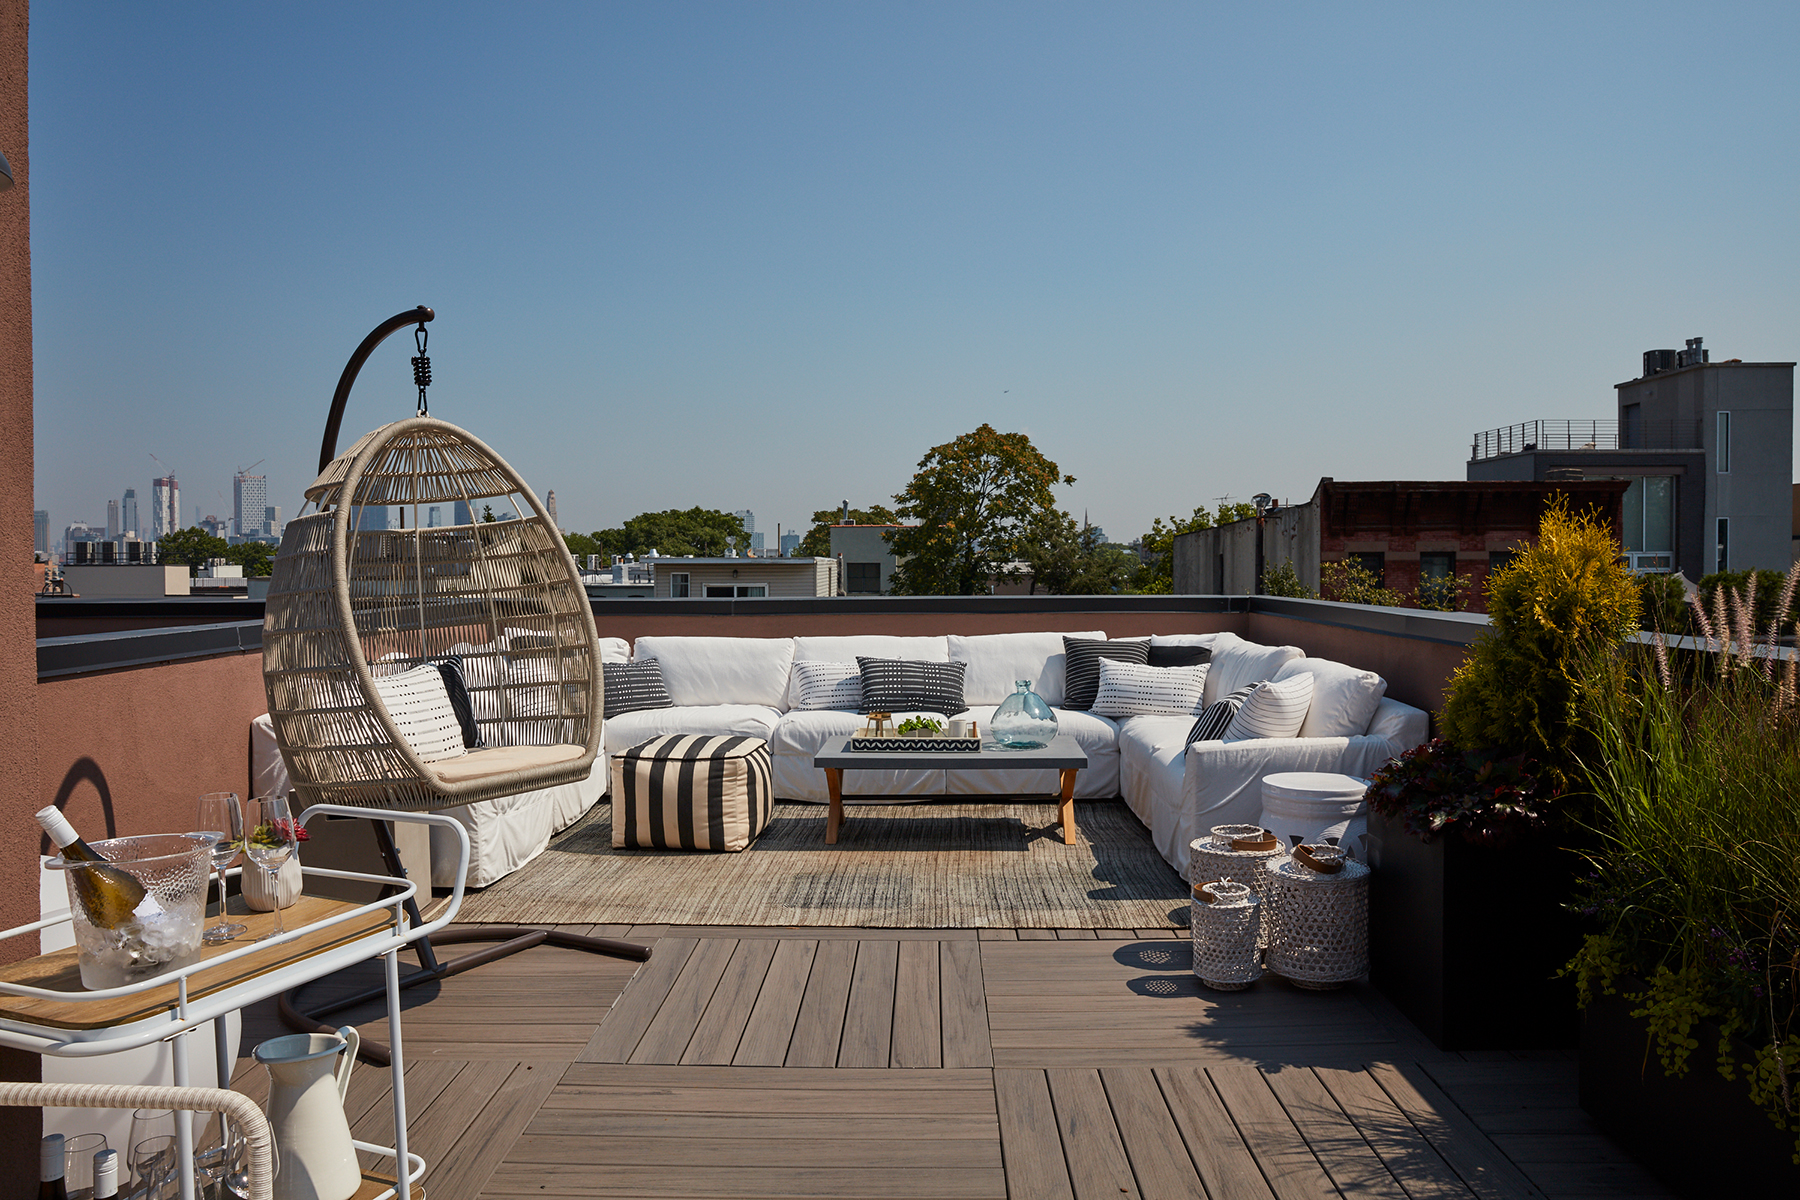 2019 Real Simple Home: Rooftop Terrace